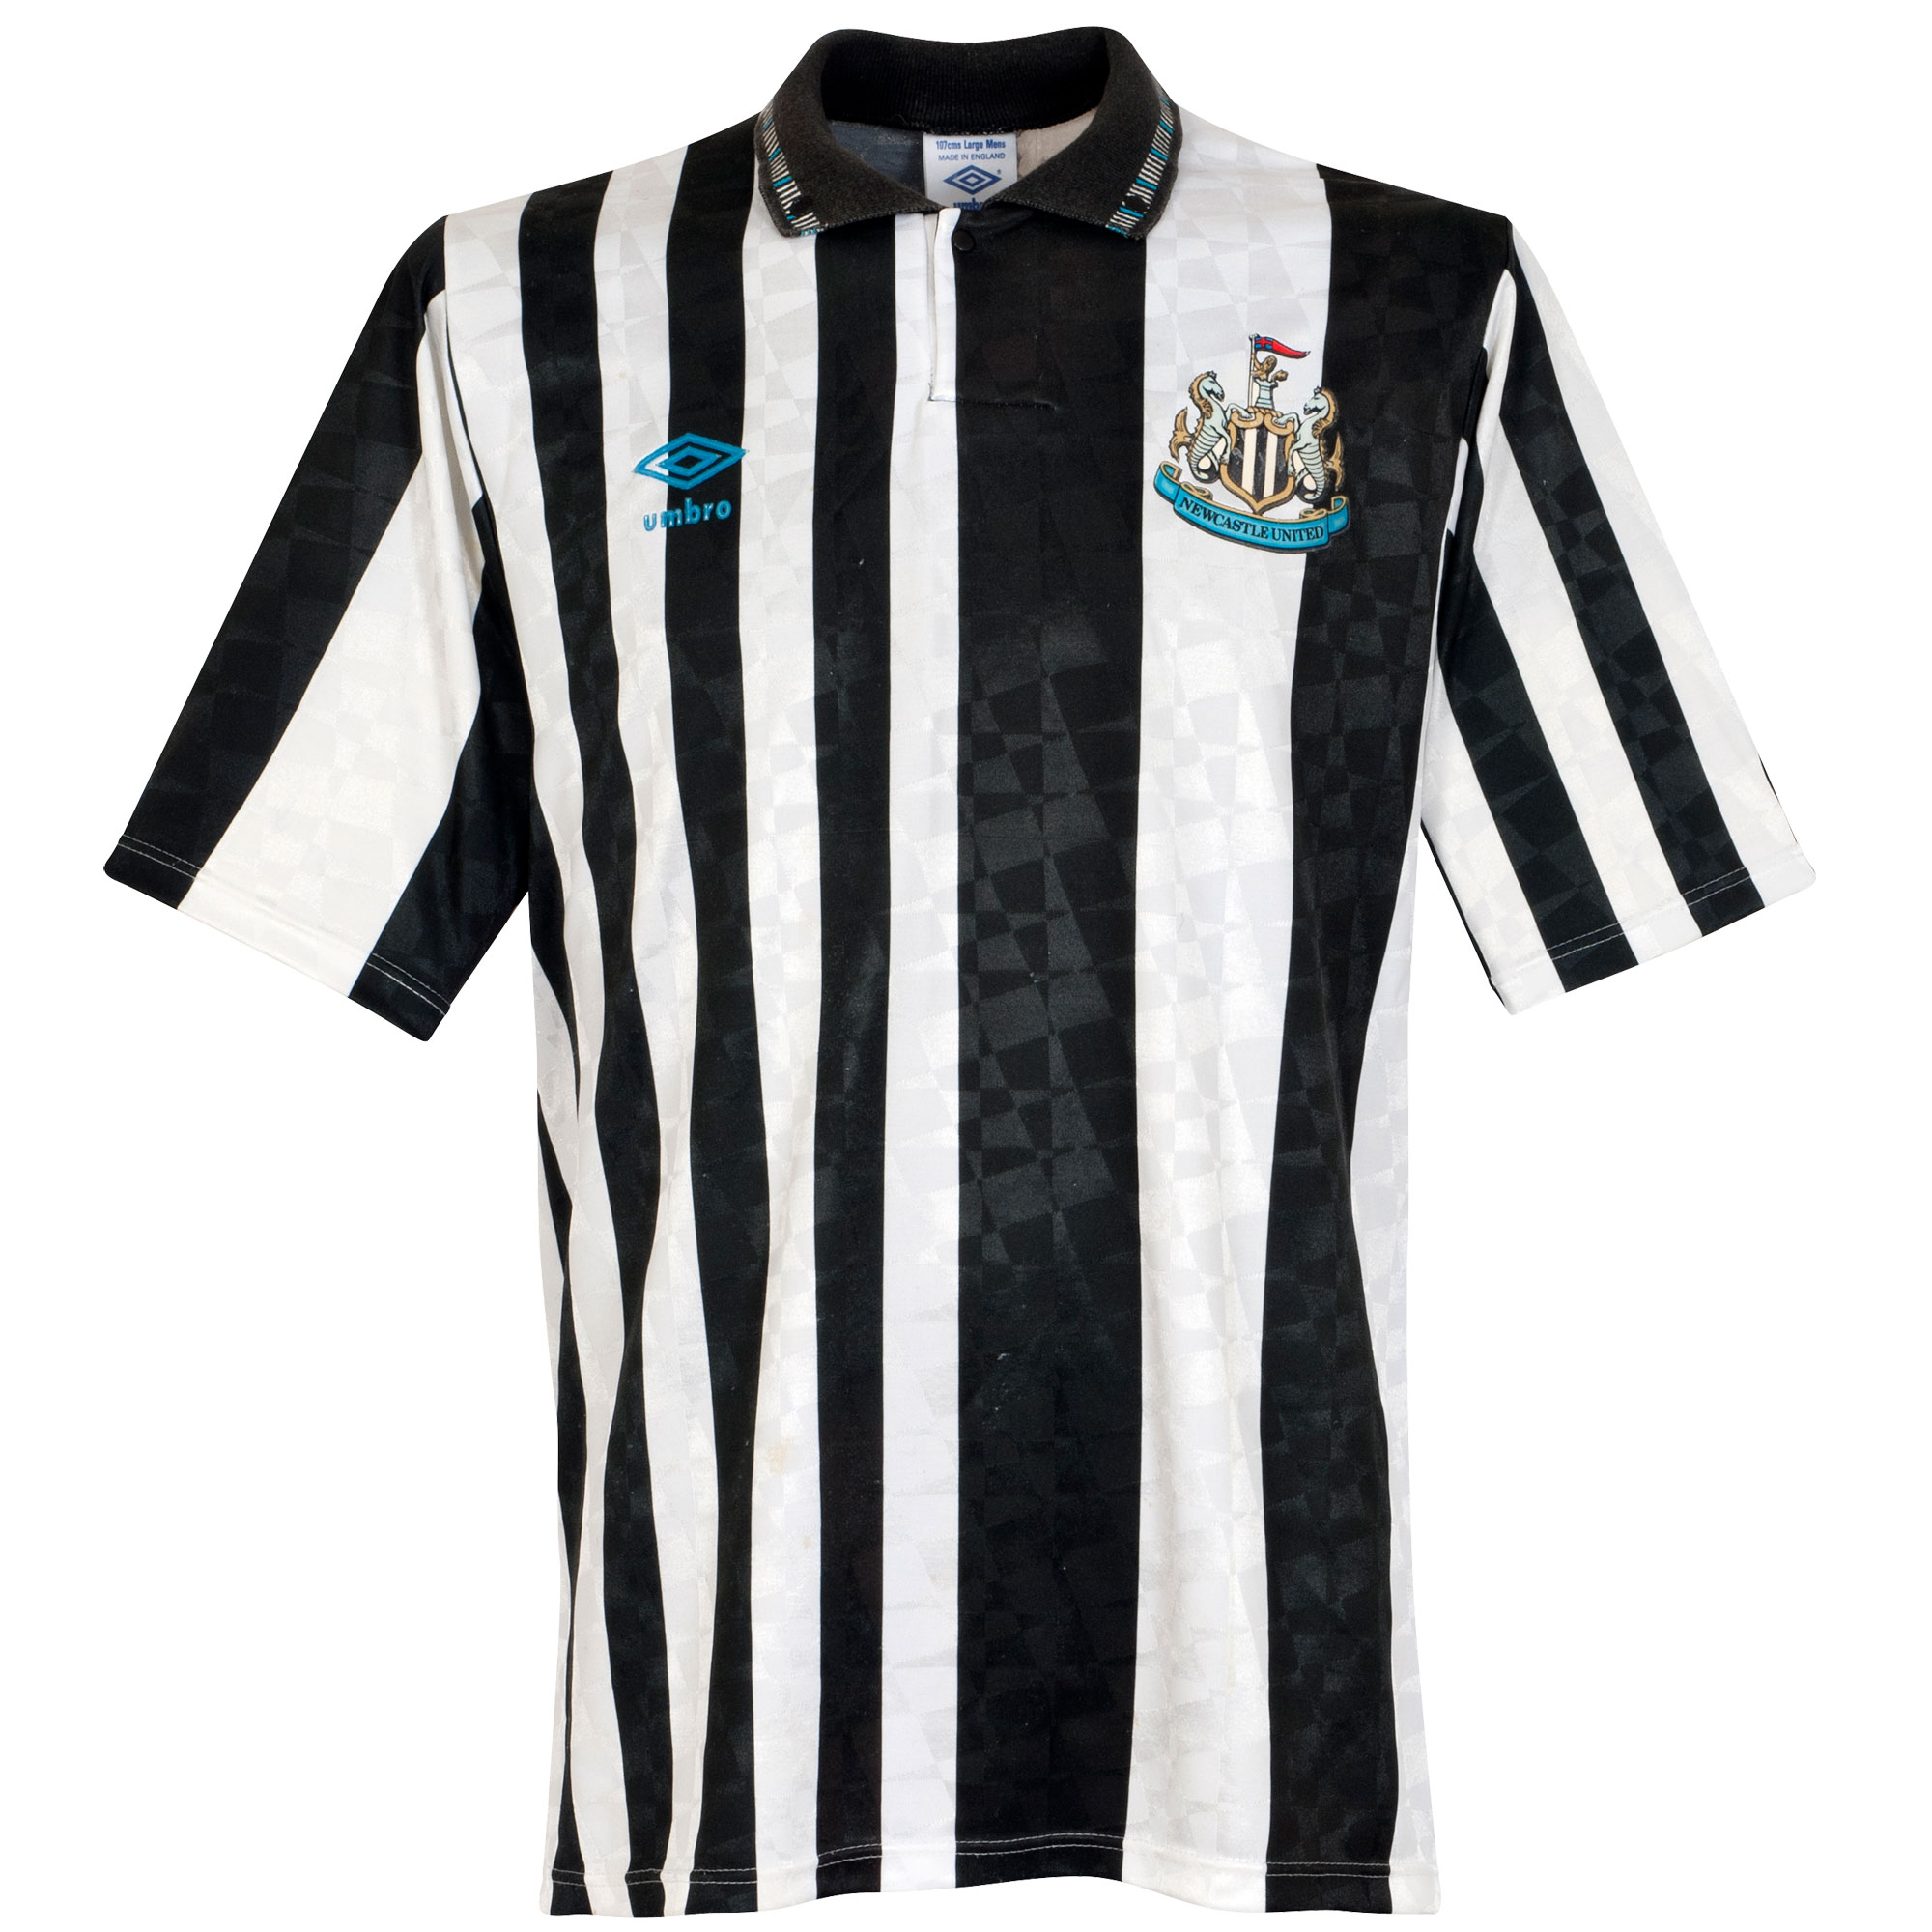 Umbro Newcastle United 1991-1992 Home Shirt - USED Condition (Fair) - Size Large - L